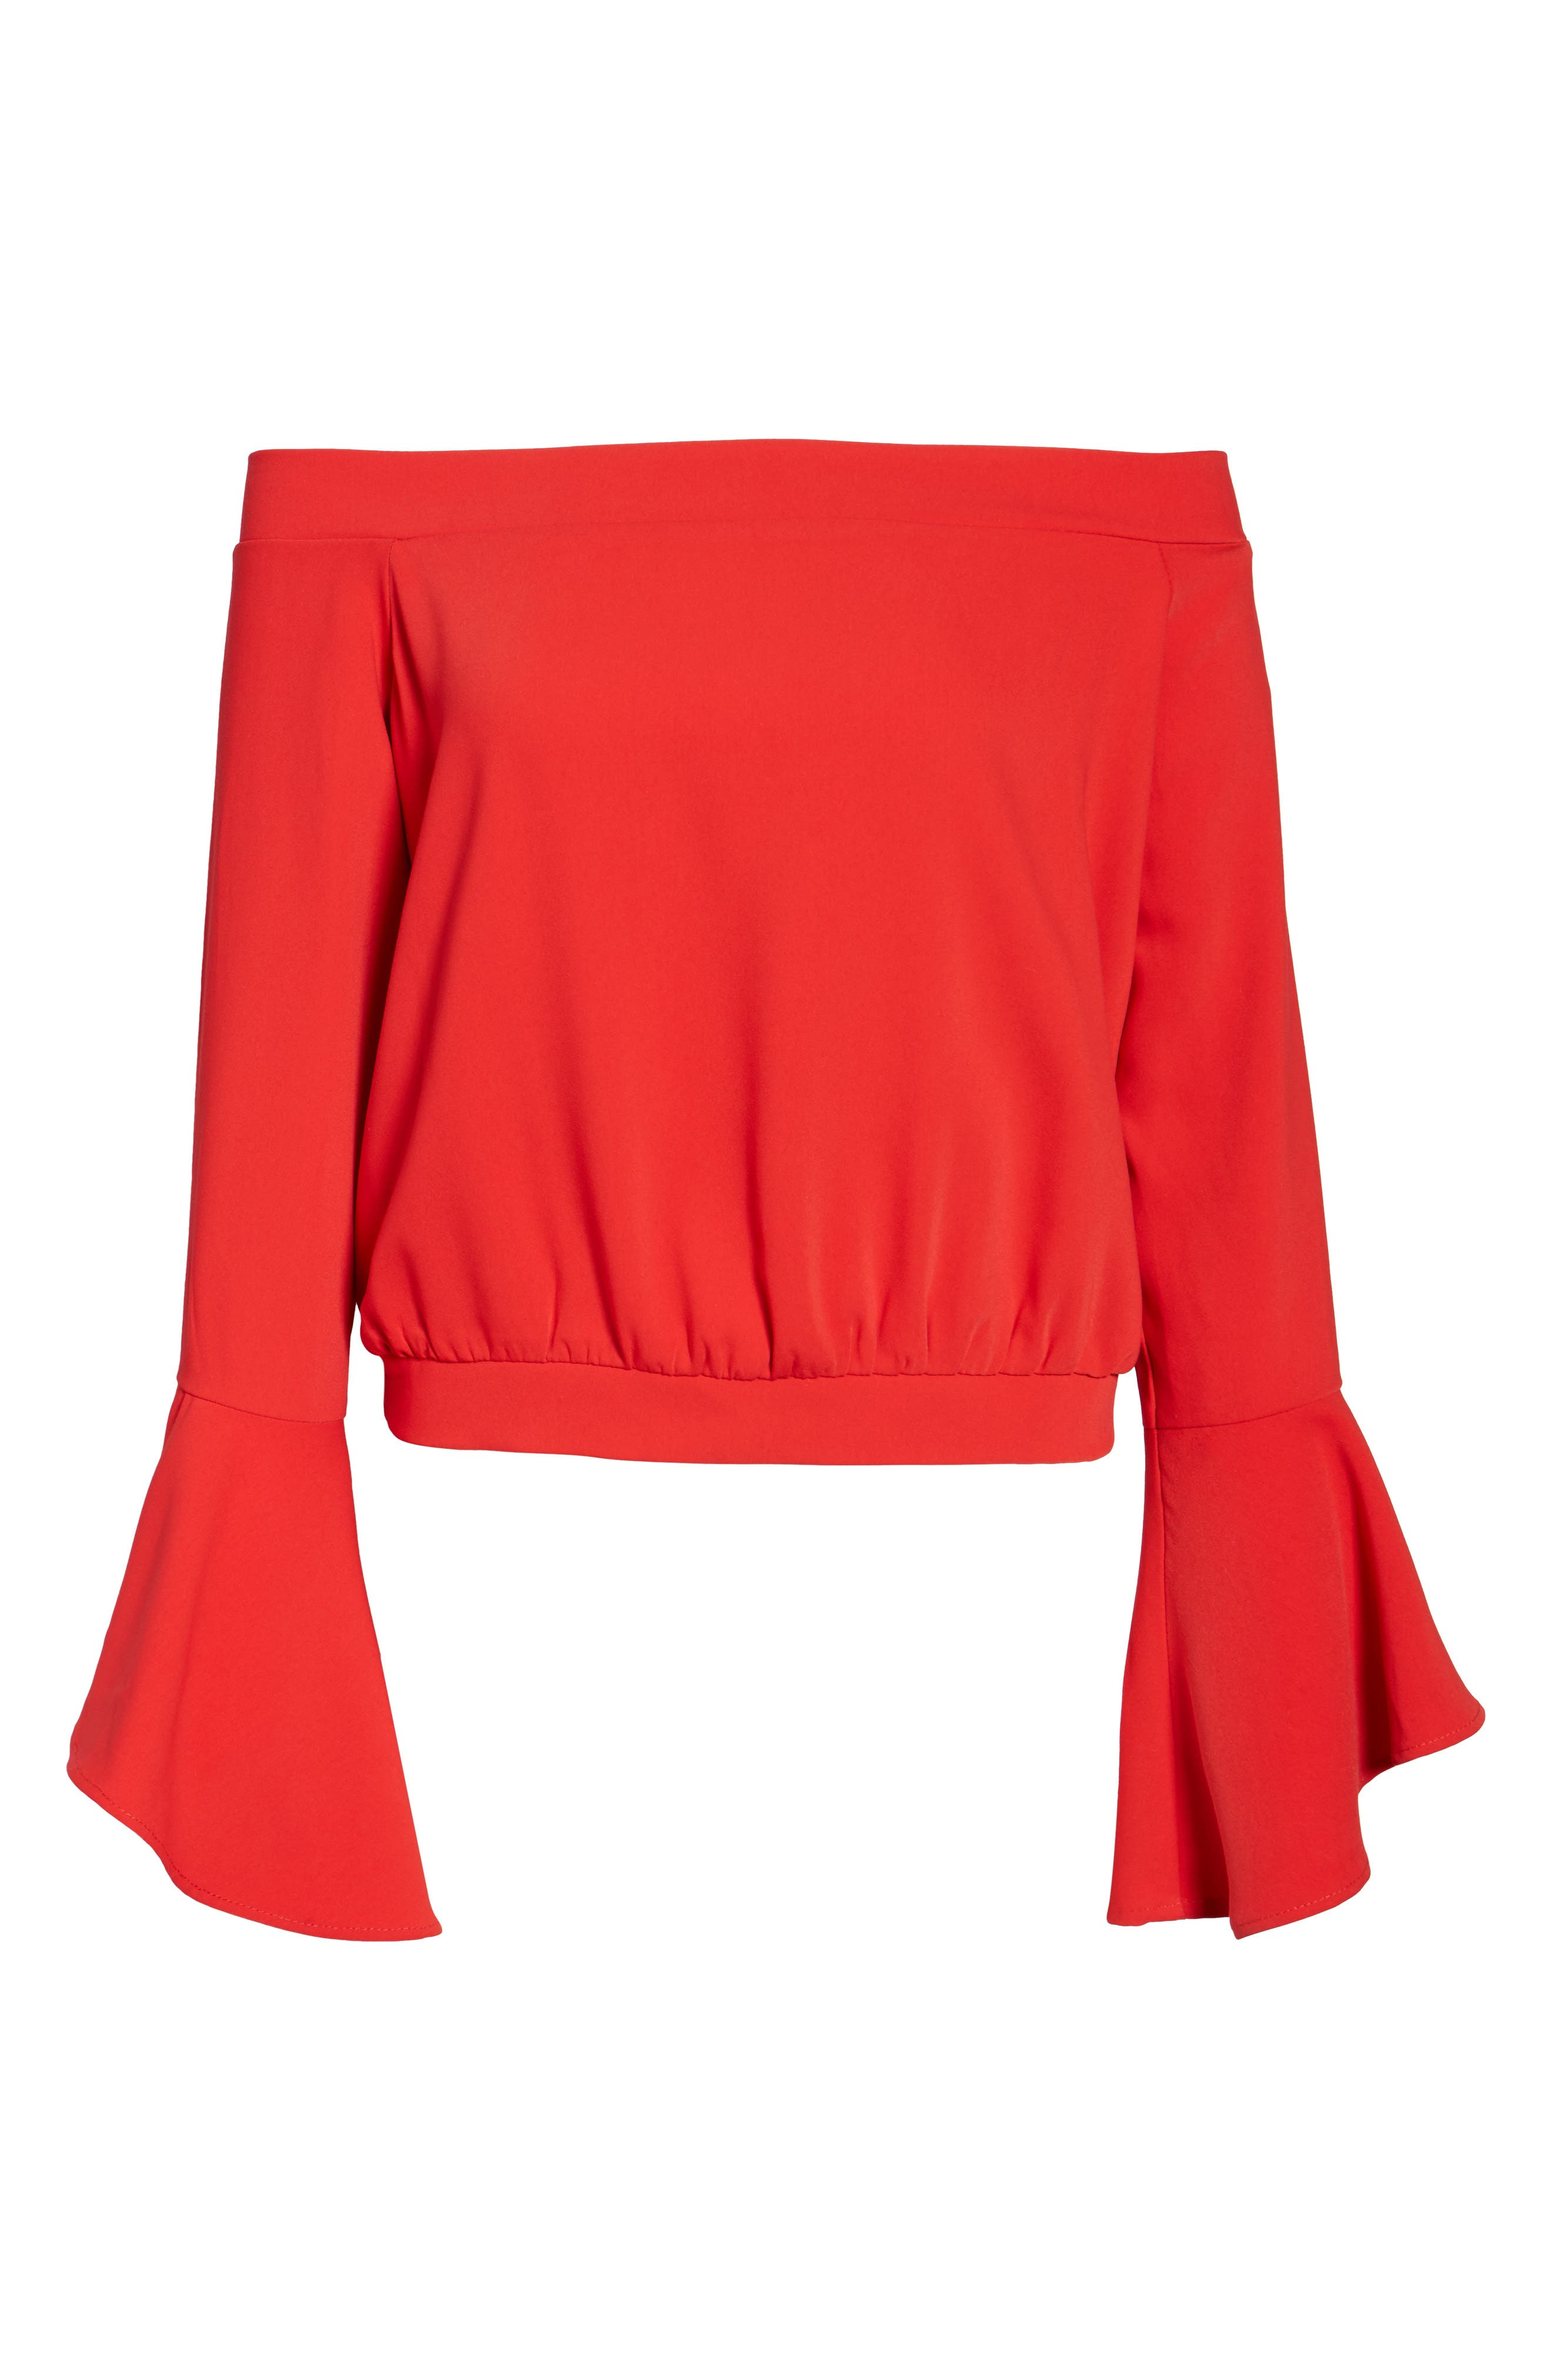 Elson Off the Shoulder Top,                             Alternate thumbnail 6, color,                             620